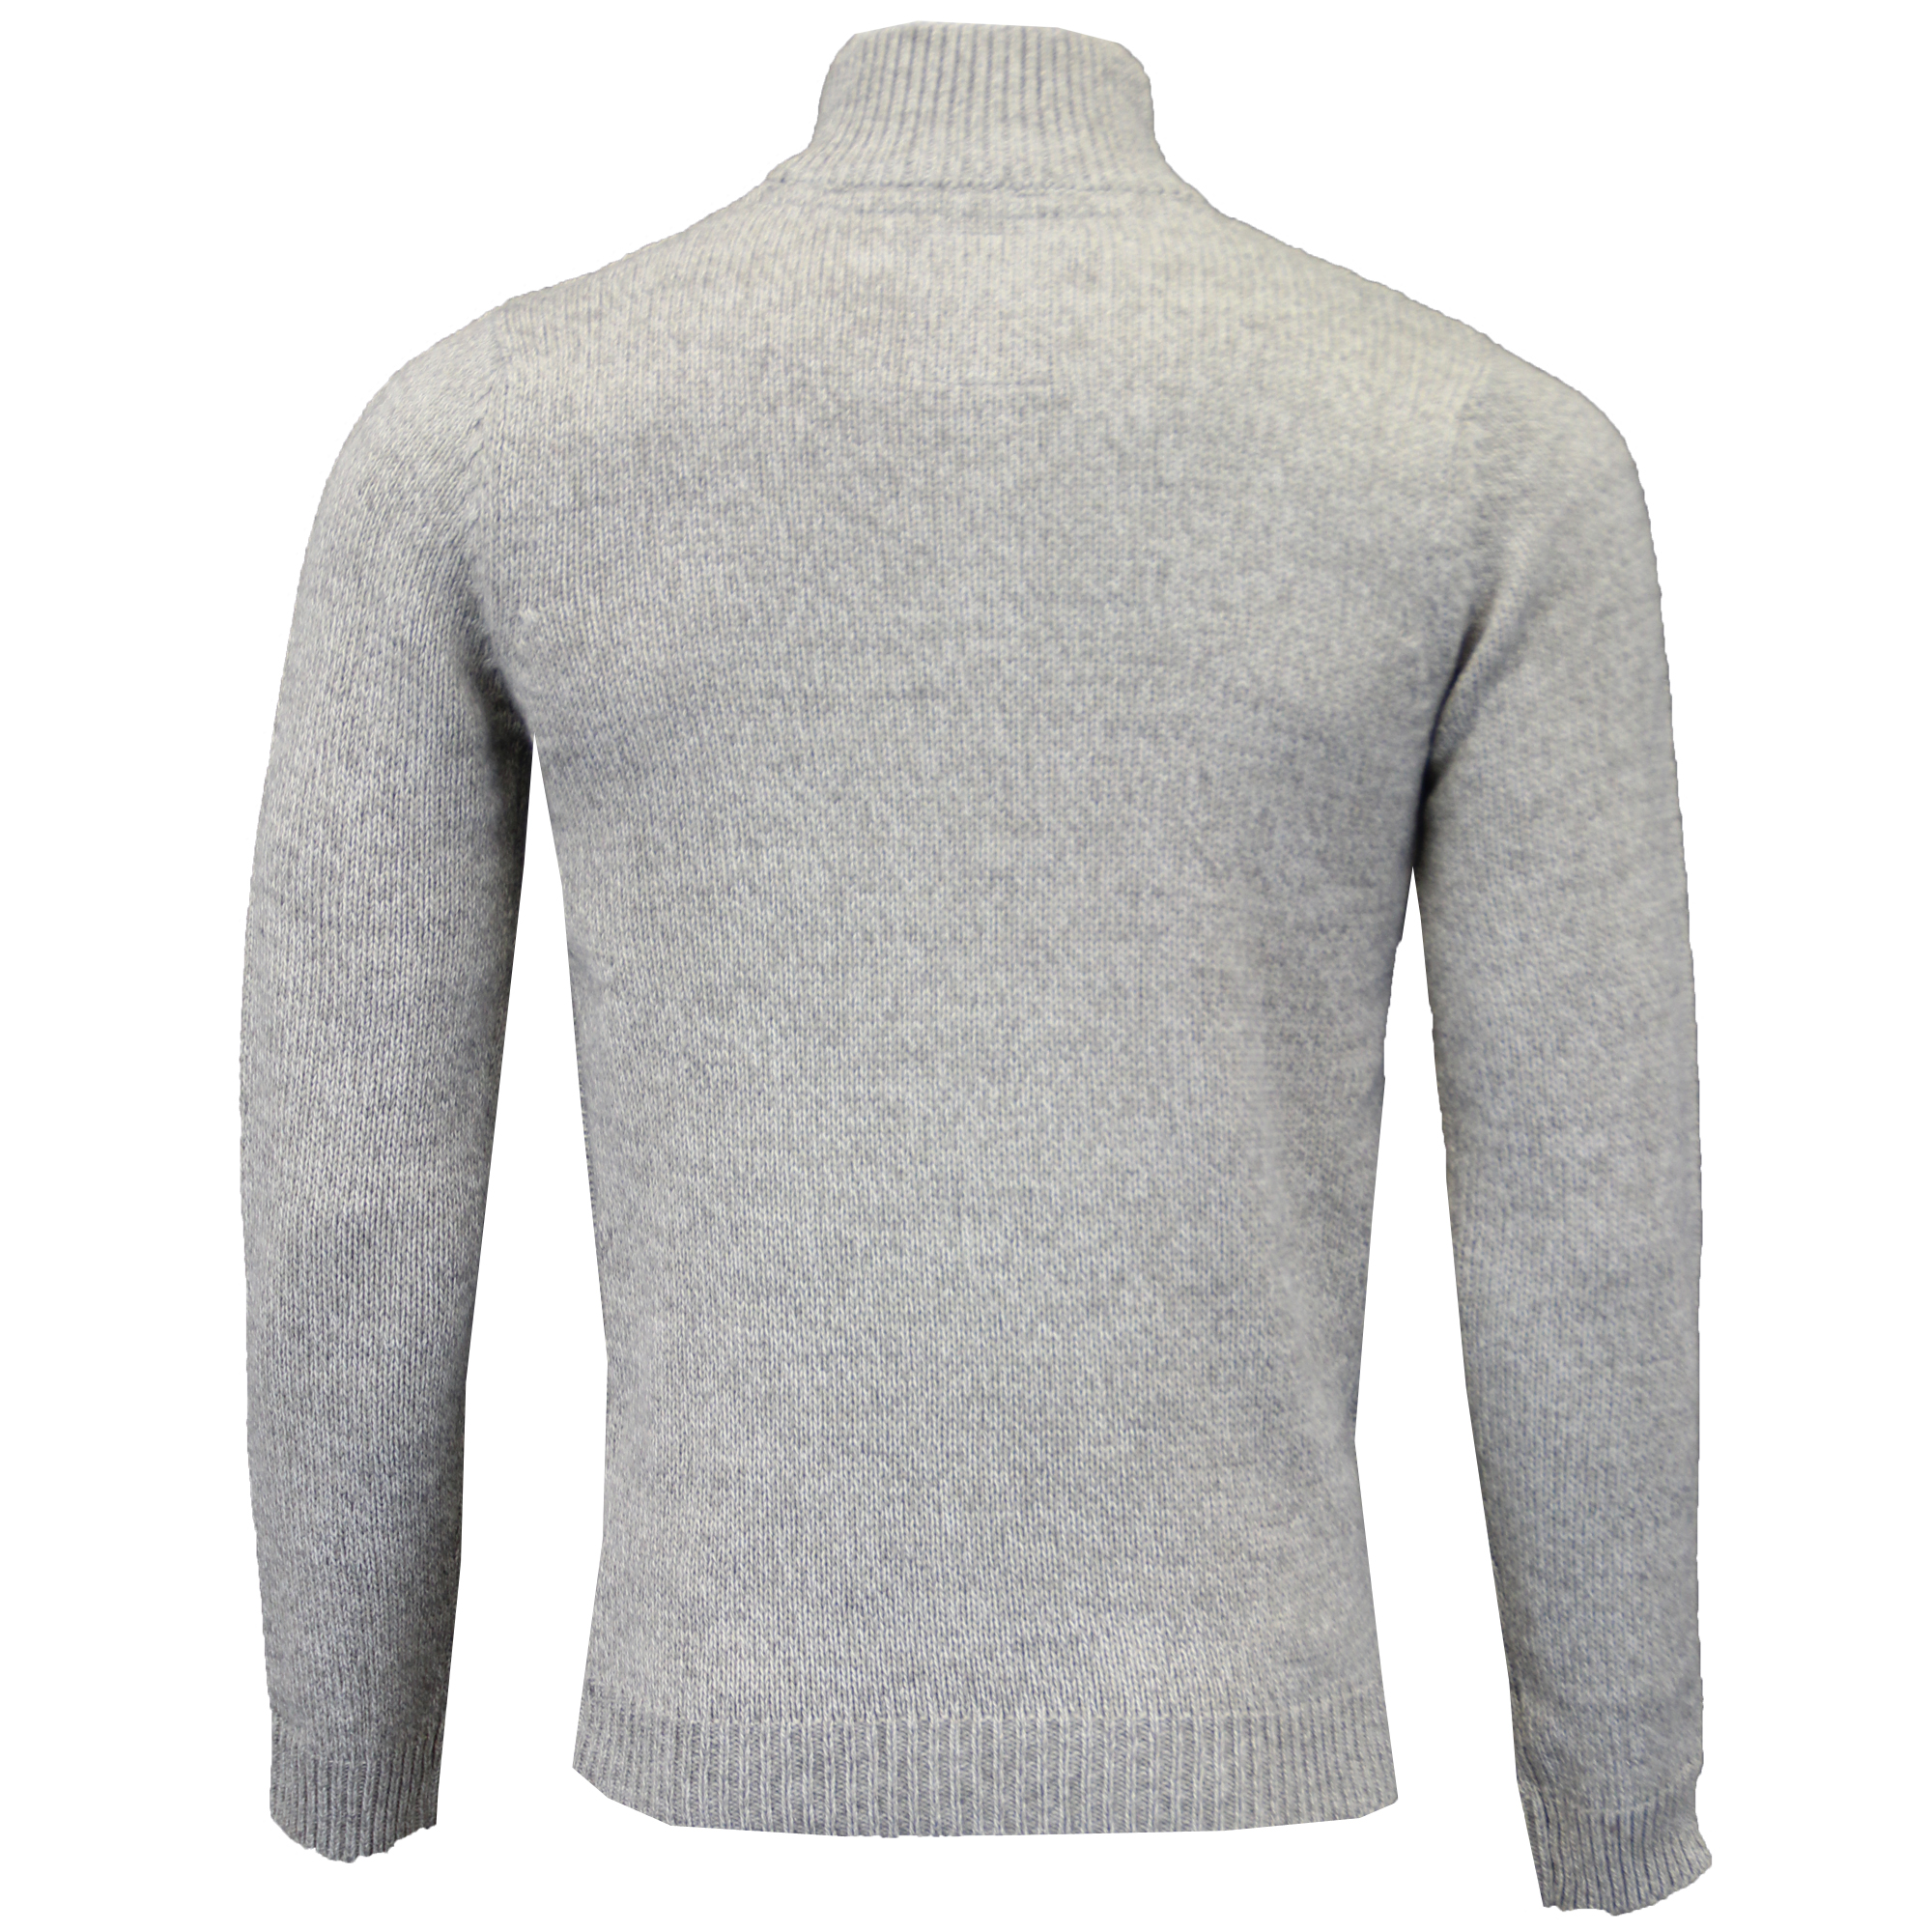 Mens-Wool-Mix-Jumper-Threadbare-Knitted-Sweater-Pullover-Top-Chunky-Zip-Winter thumbnail 21